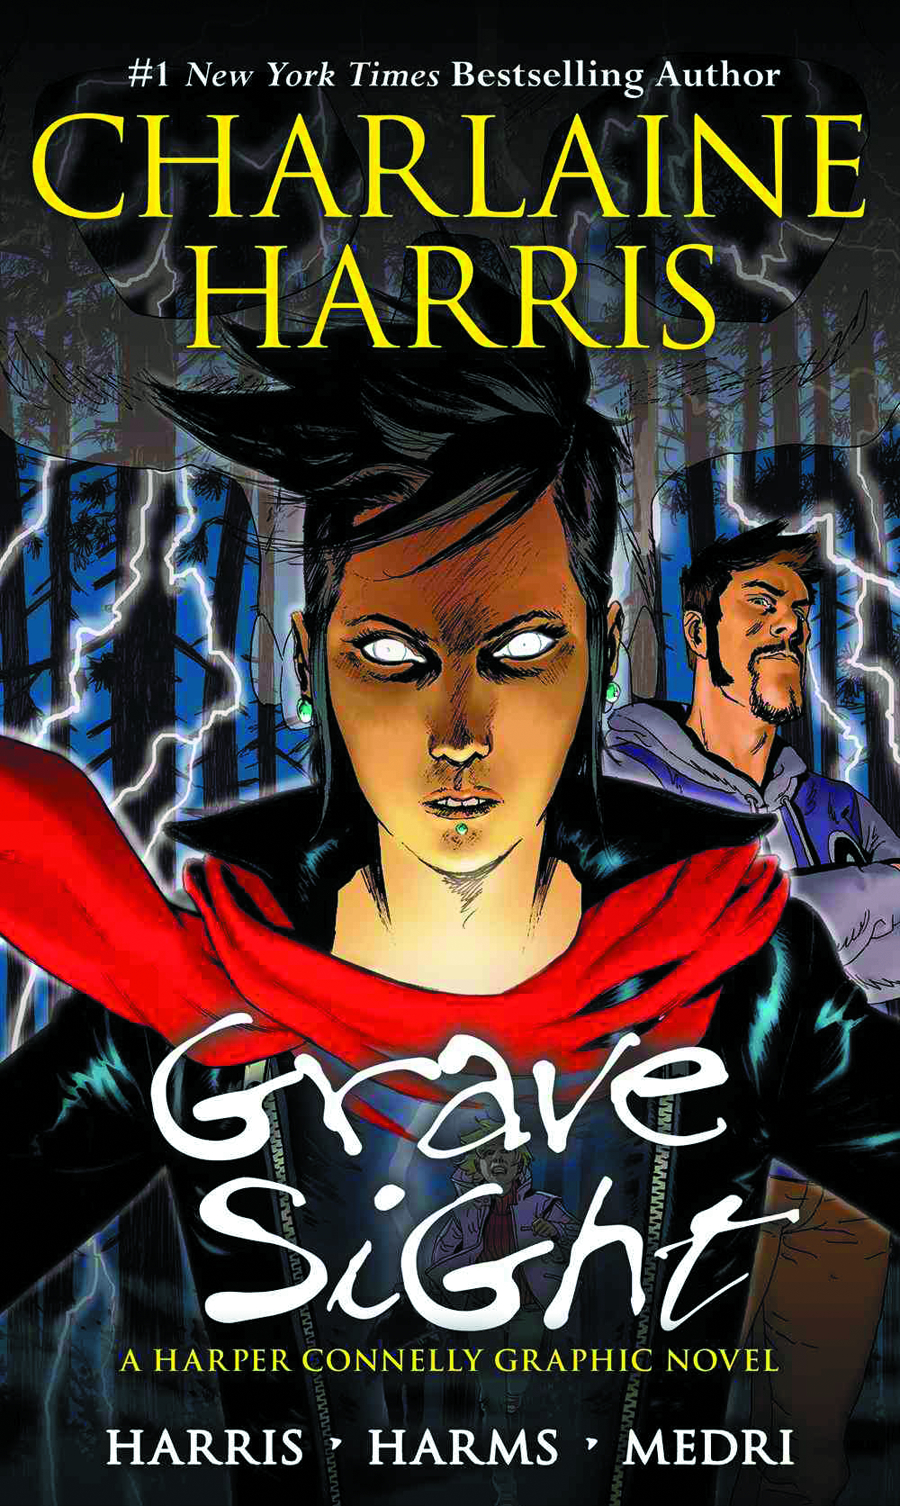 CHARLAINE HARRIS HARPER CONNELLY GN VOL 01 GRAVE SIGHT